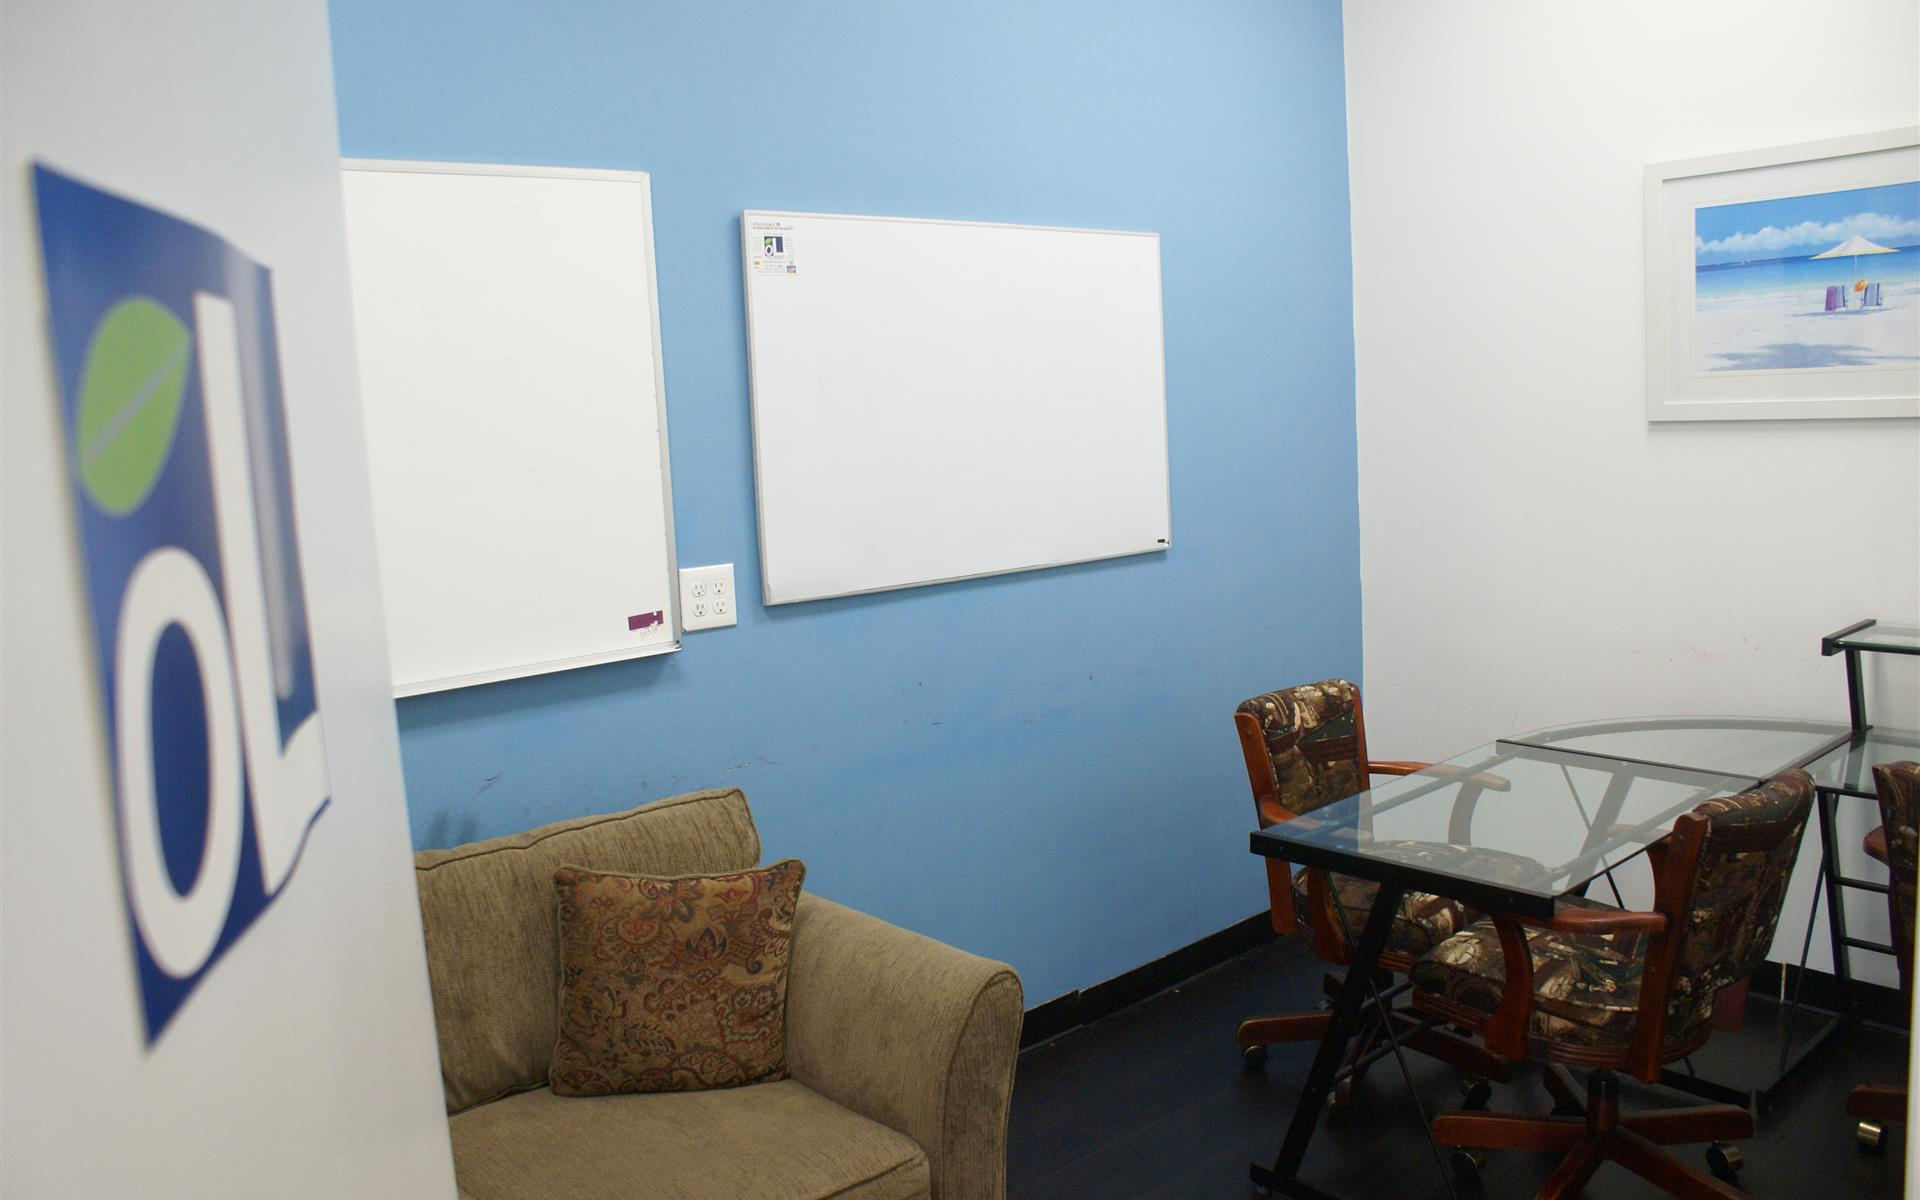 officeLOCALE Coworking Space & Cyberscraper - Private Office/Meeting Room